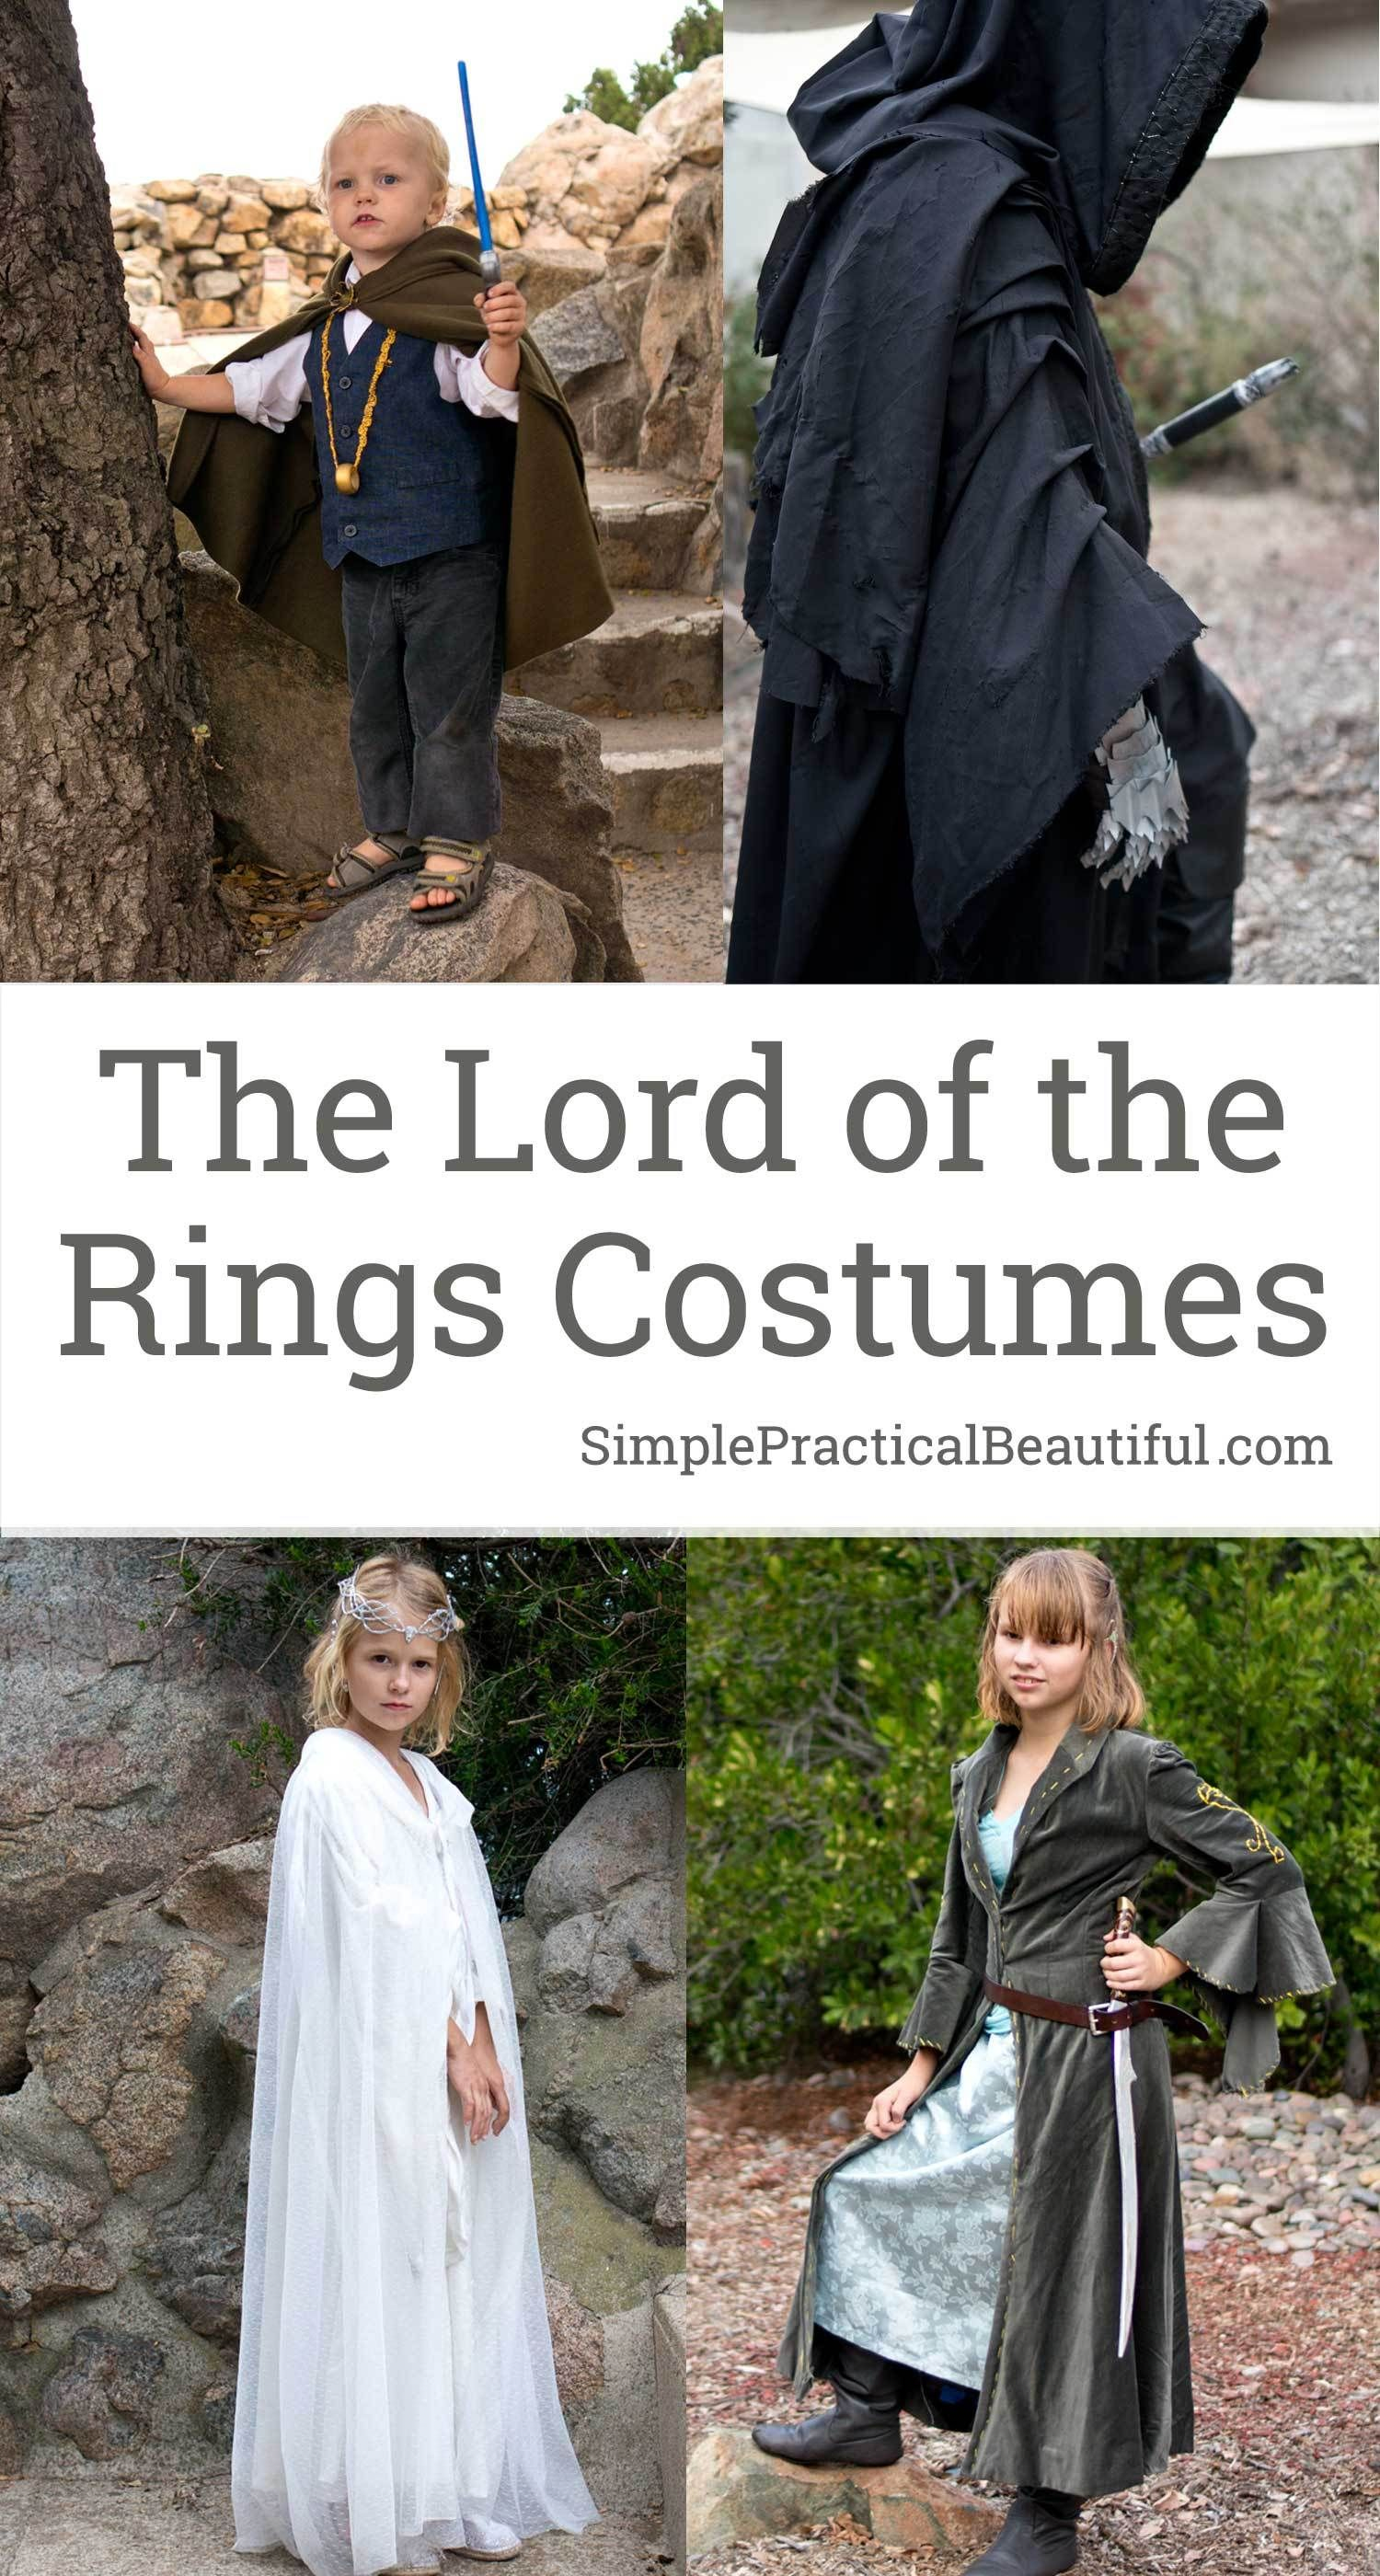 MYTHICAL MAN COSTUME ADULTS BOOK DAY ADULTS MIDDLE EARTH LORD MOVIE FANCY DRESS